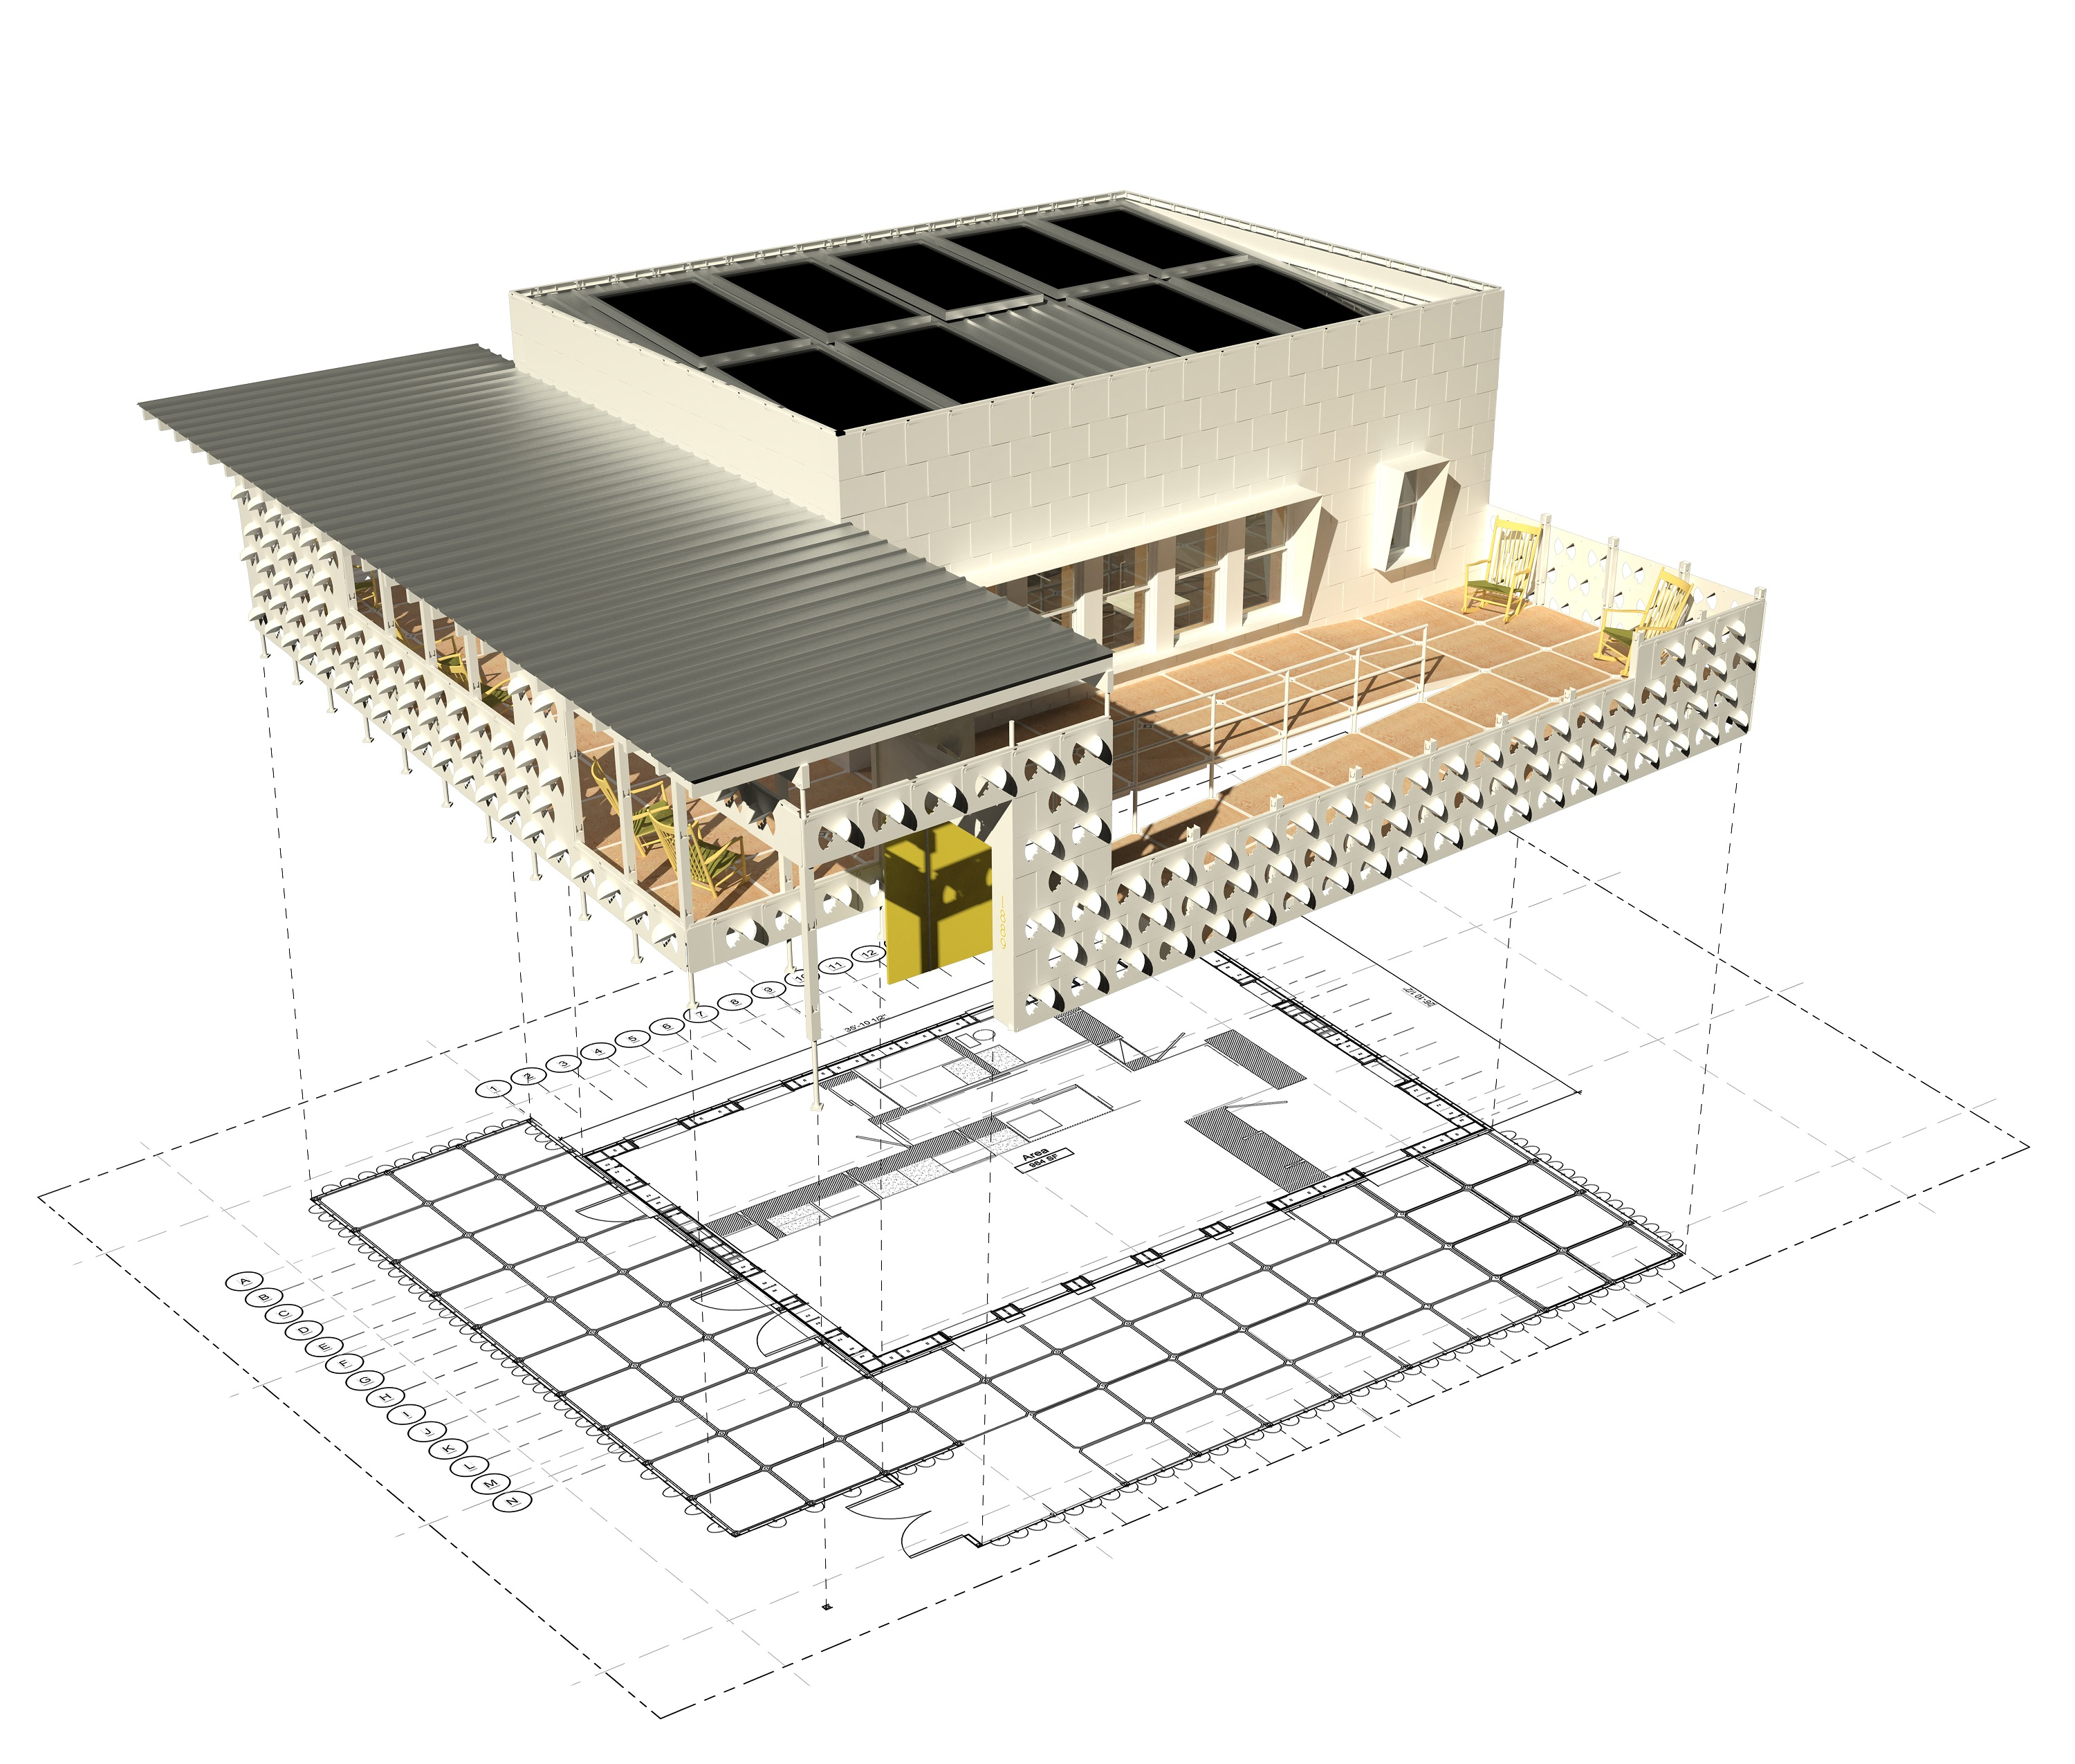 Computer-generated illustration of a modern house hovering above its blueprint floor plans.